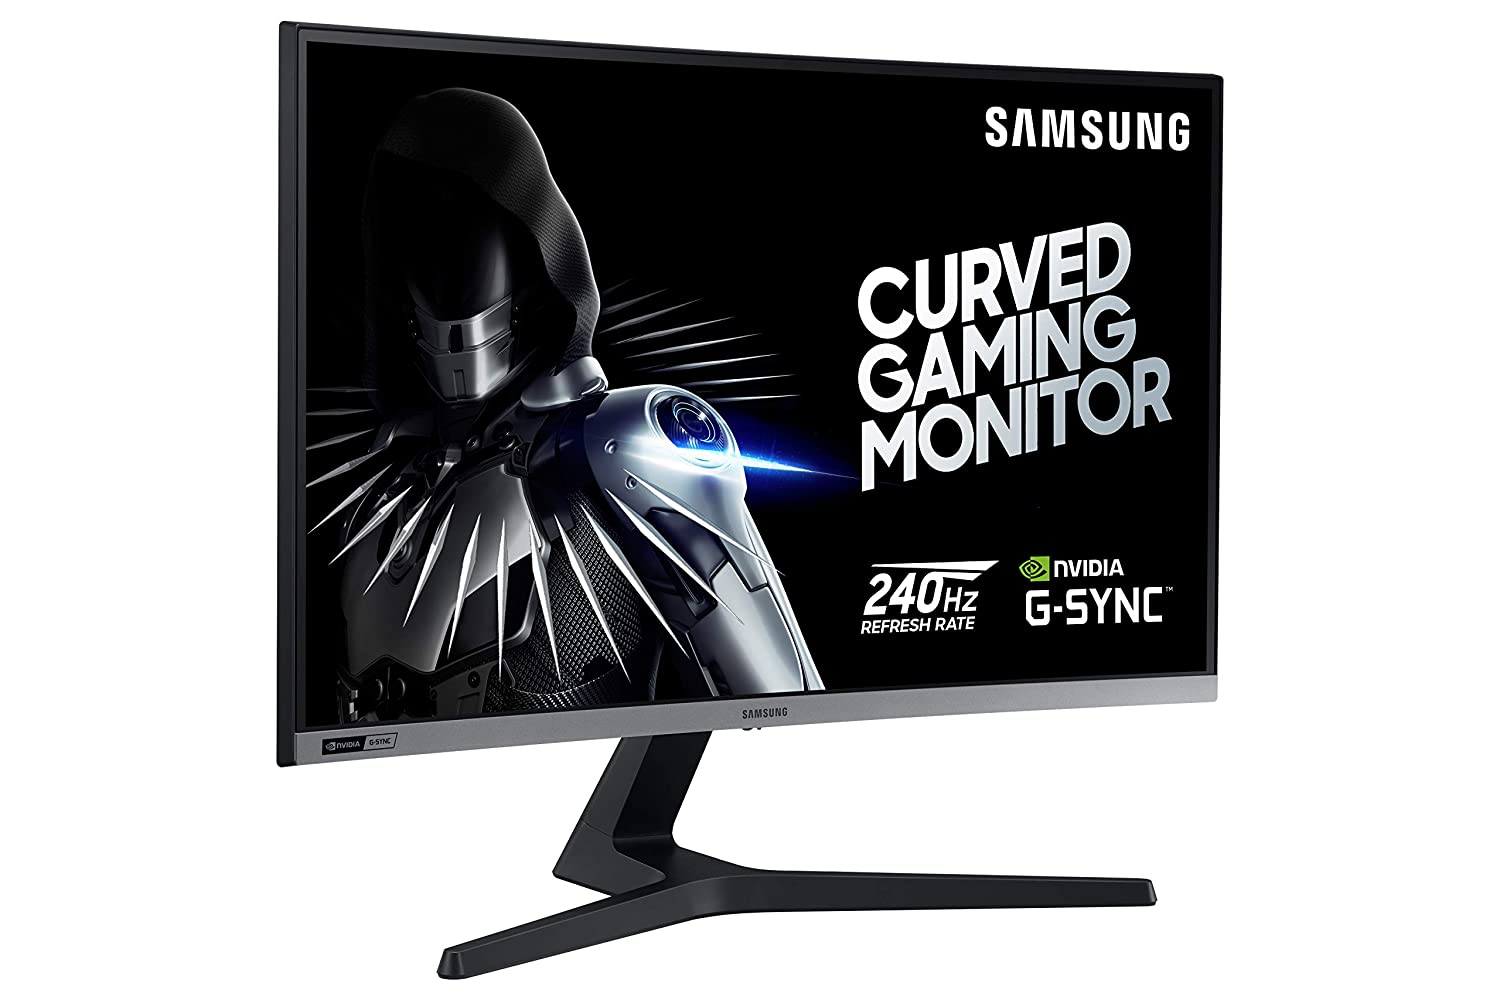 Samsung 27-Inch CRG5 240Hz Curved Gaming Monitor LC27RG50FQNXZA Computer Monitor, 1920 x 1080p Resolution, 4ms Response Time, G-Sync Compatible, HDMI